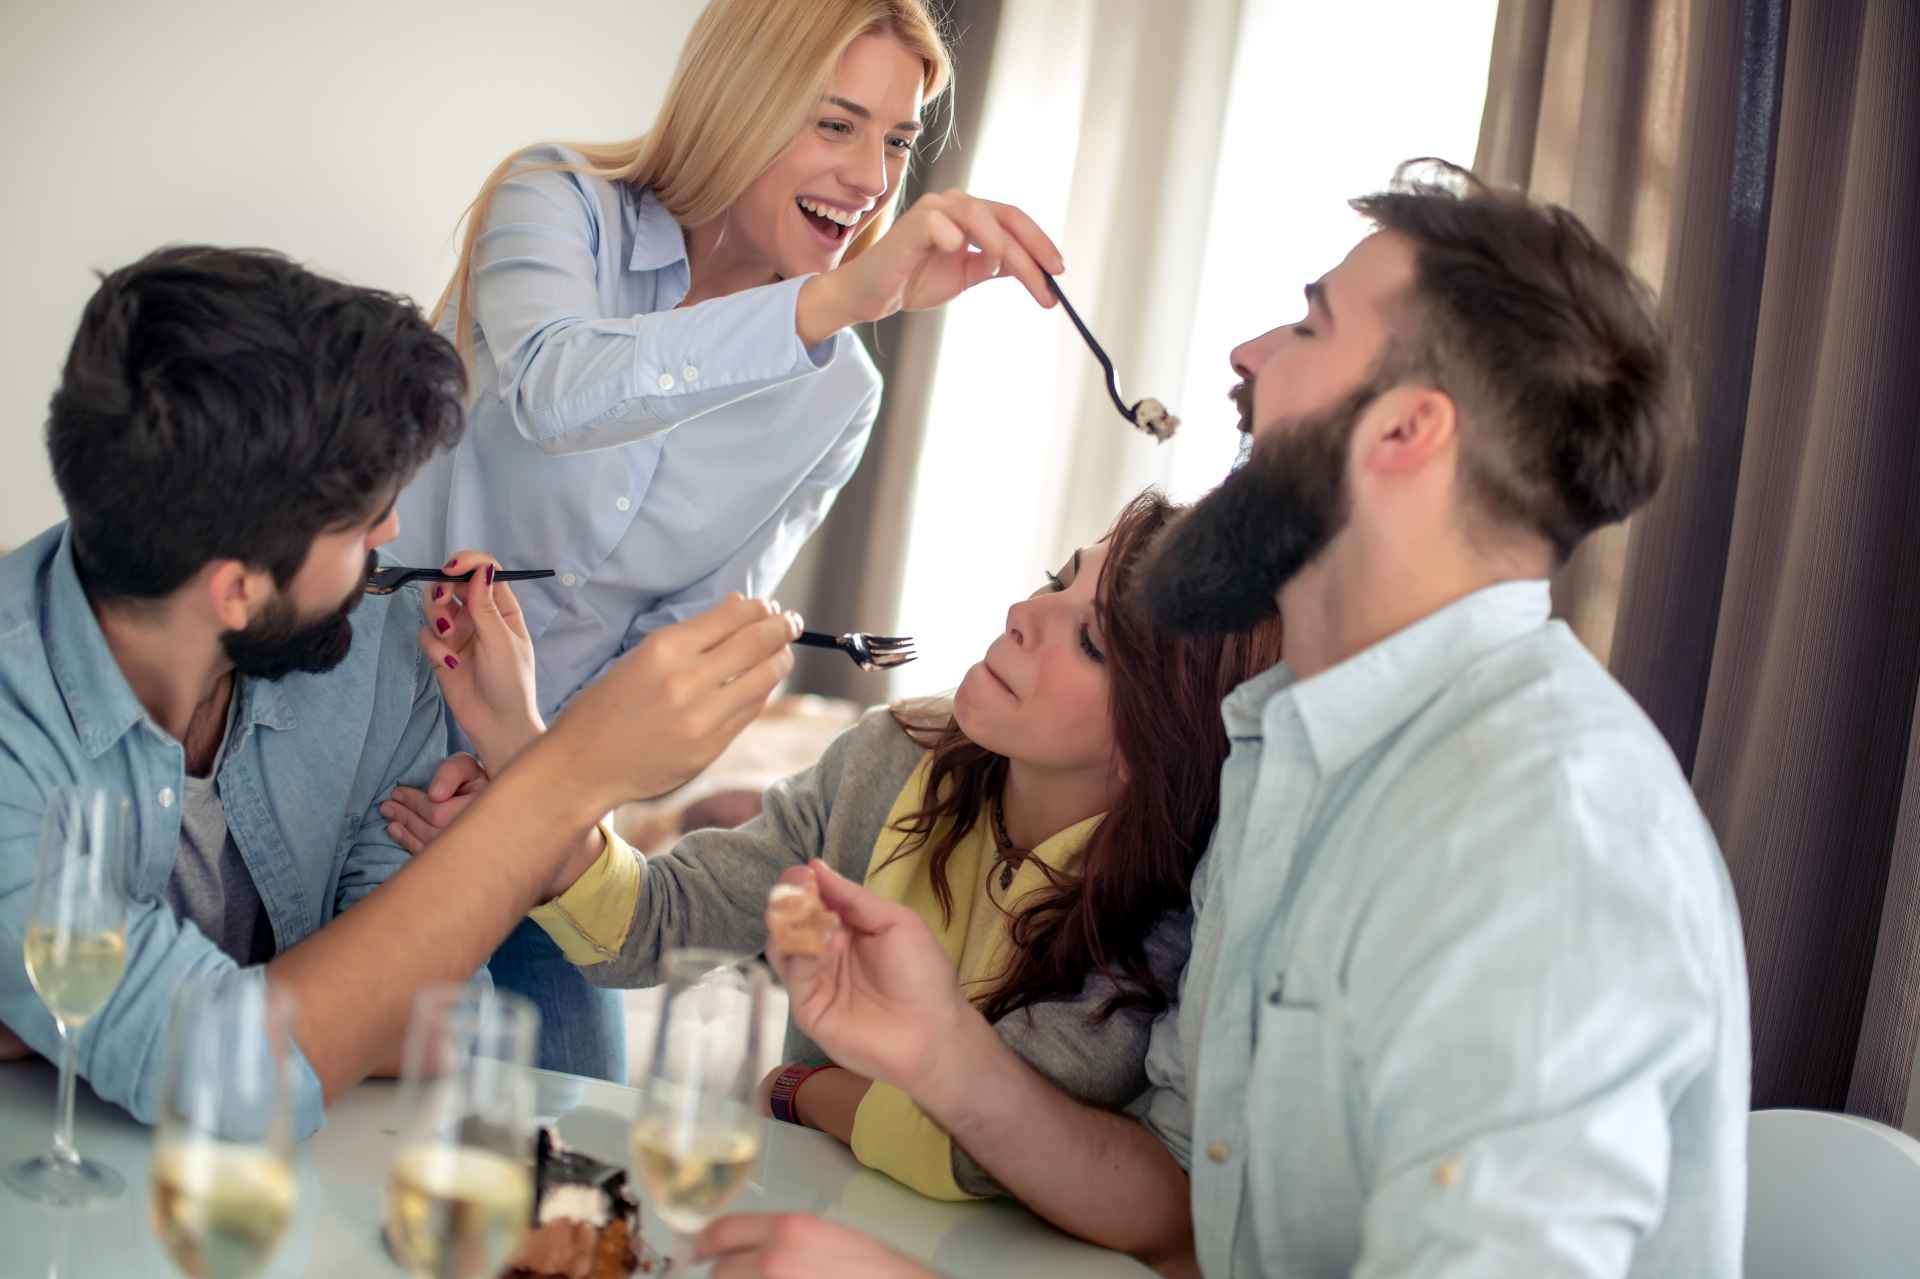 VelvetLips Guest Blogger: Polyamory - Have Your Cake and Eat it, Too